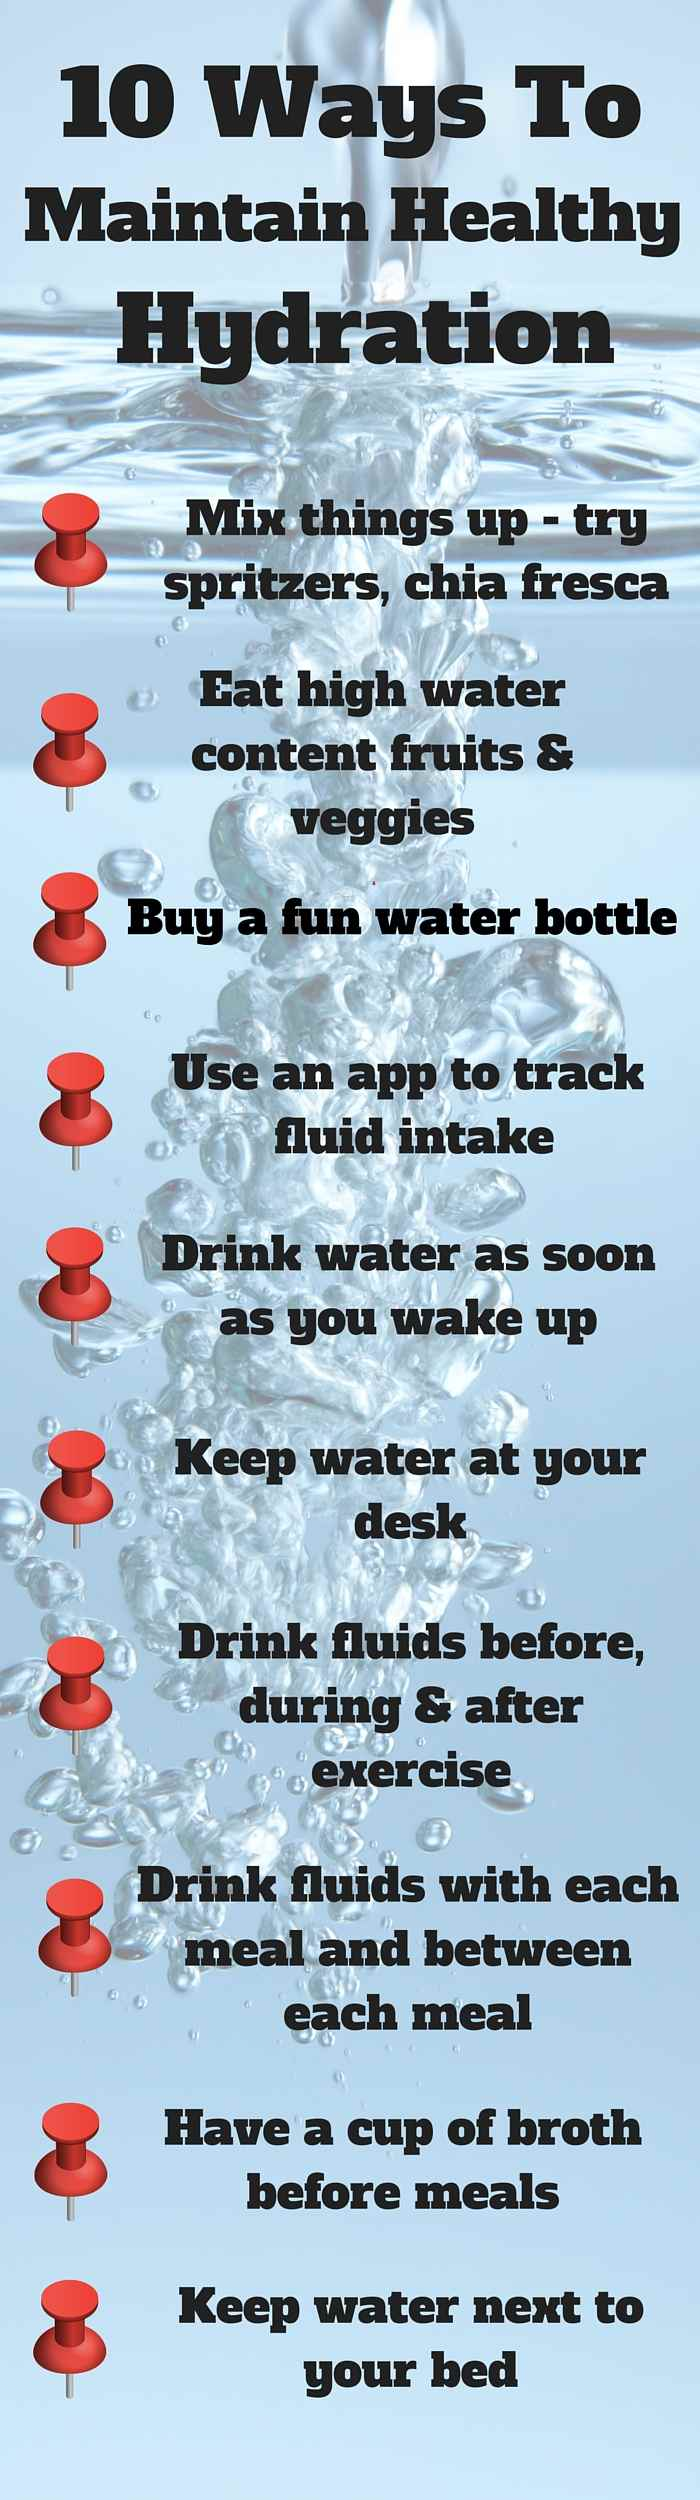 10 Ways To Maintain Healthy Hydration - try these tips to help stay hydrated throughout the year